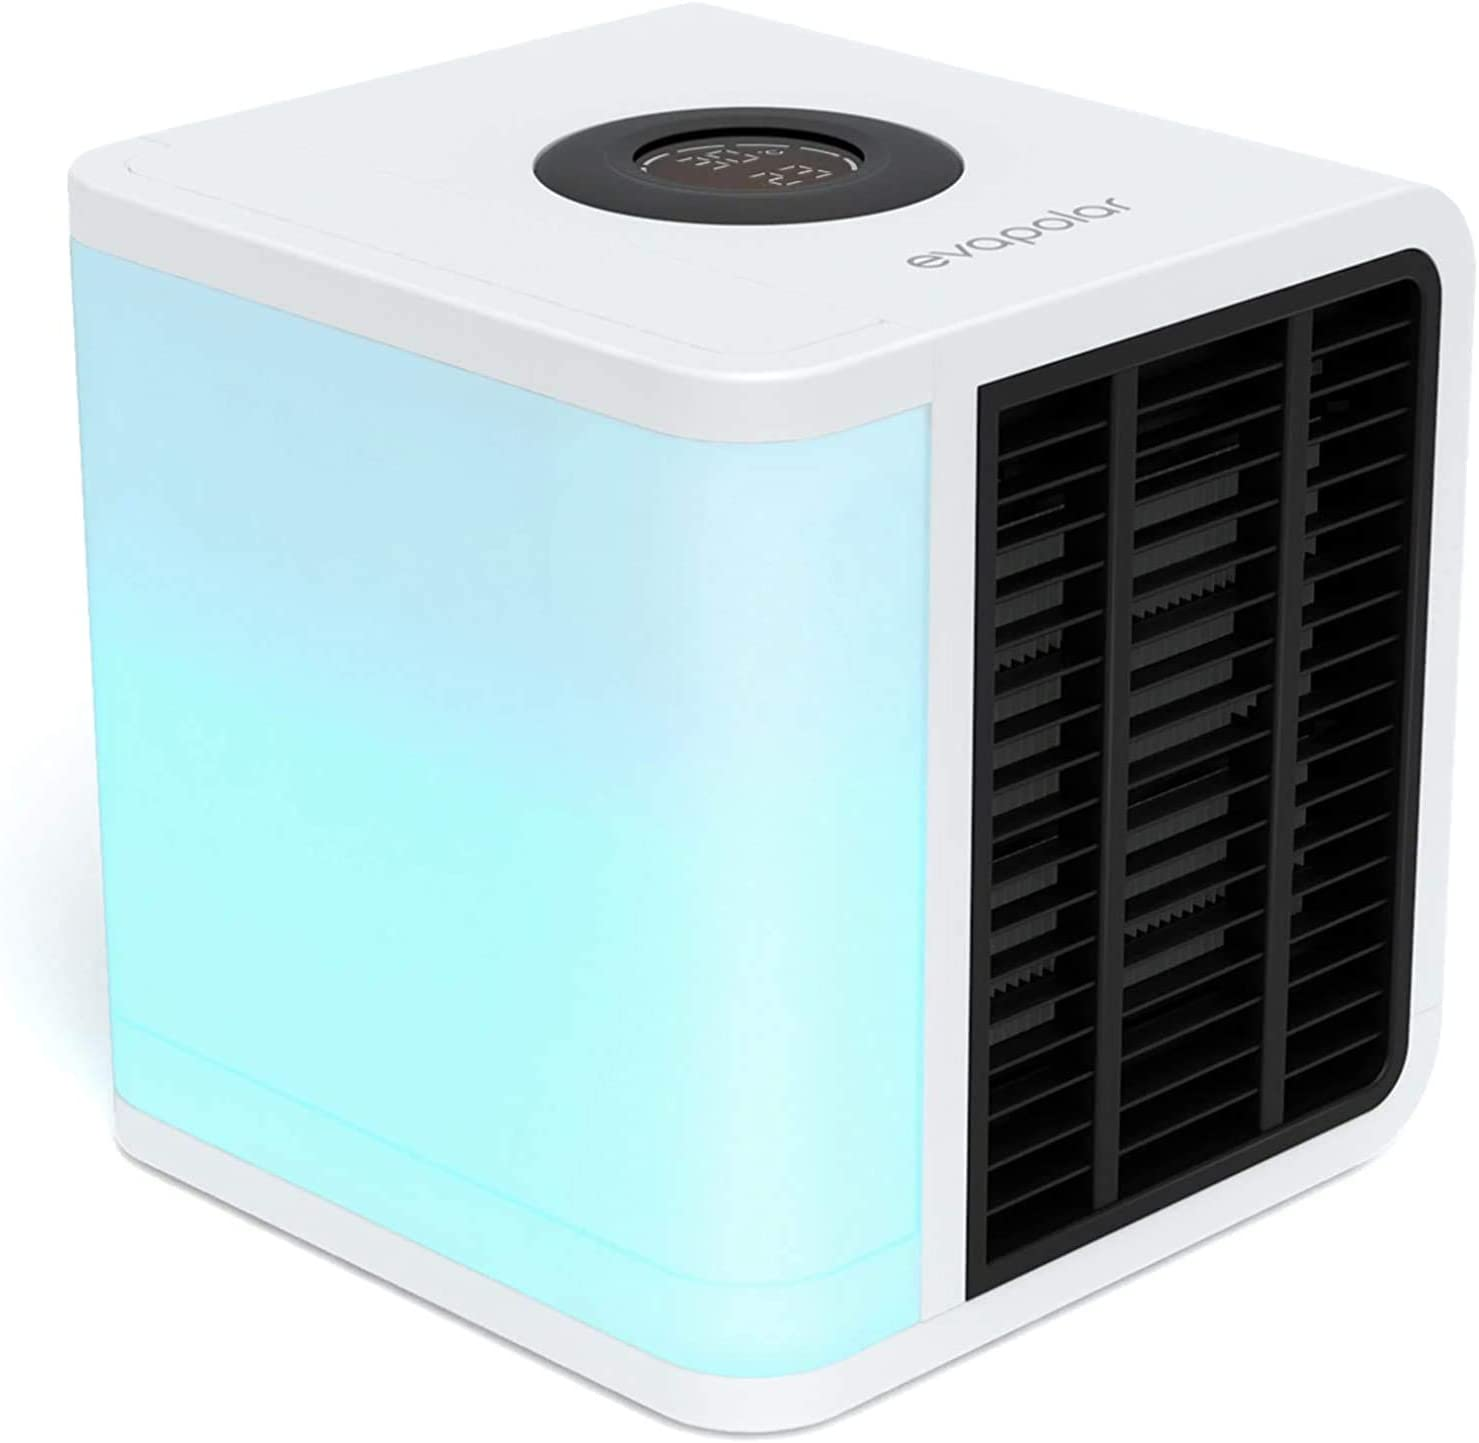 Evaporative Air Cooler Portable Indoor Cooler Humidifier Room Tower Conditioner